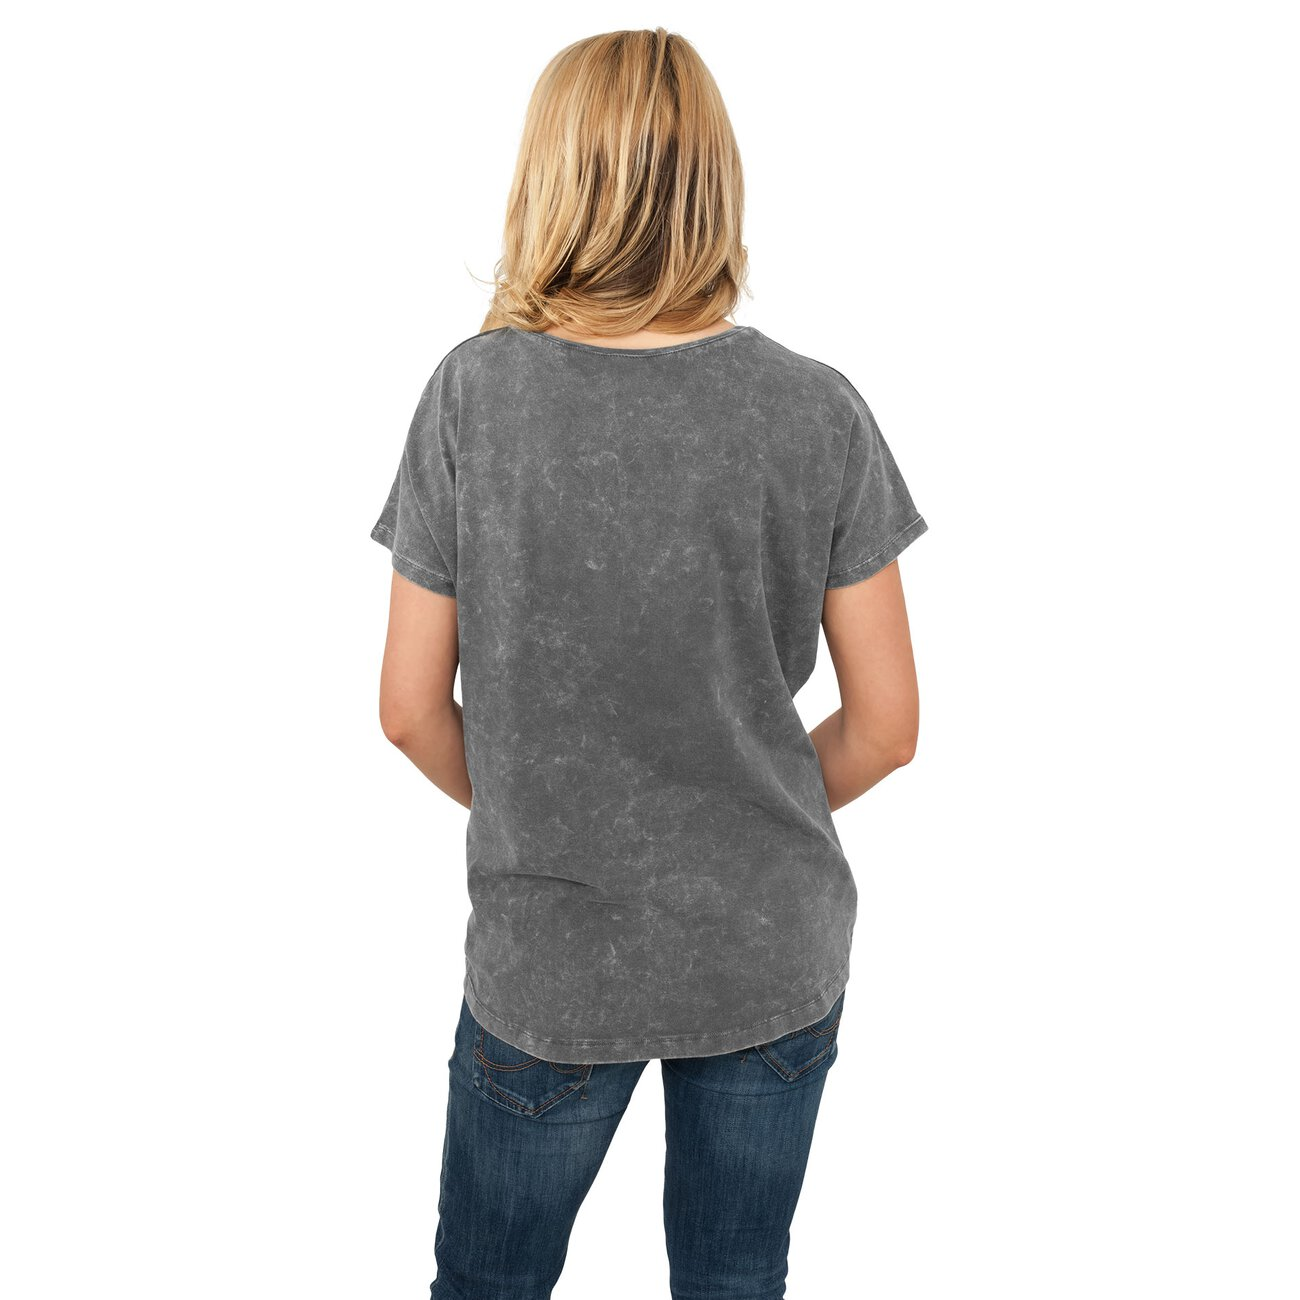 a63930842f0f0b Used Look Shirt Damen